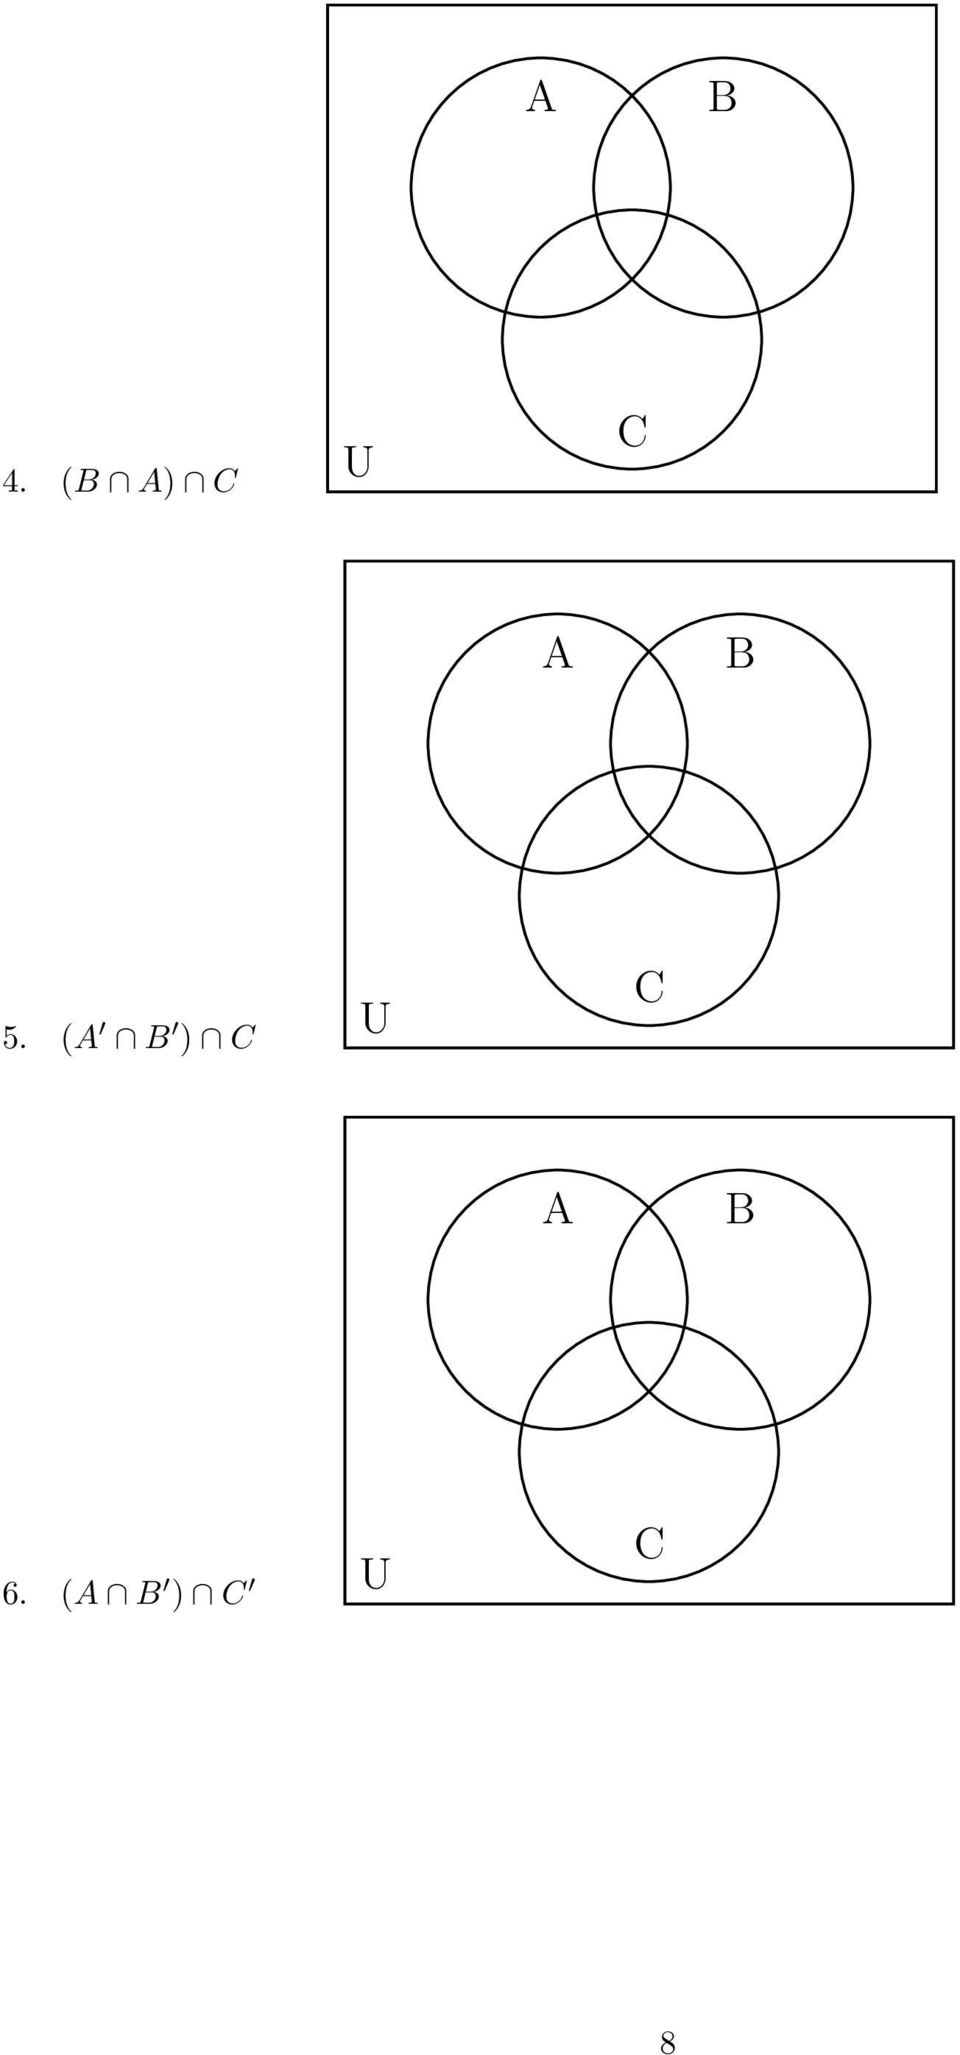 hight resolution of  the cardinal number formula for any two sets and n n n n examples 1 se the numerals representing the cardinalities in the venn diagrams